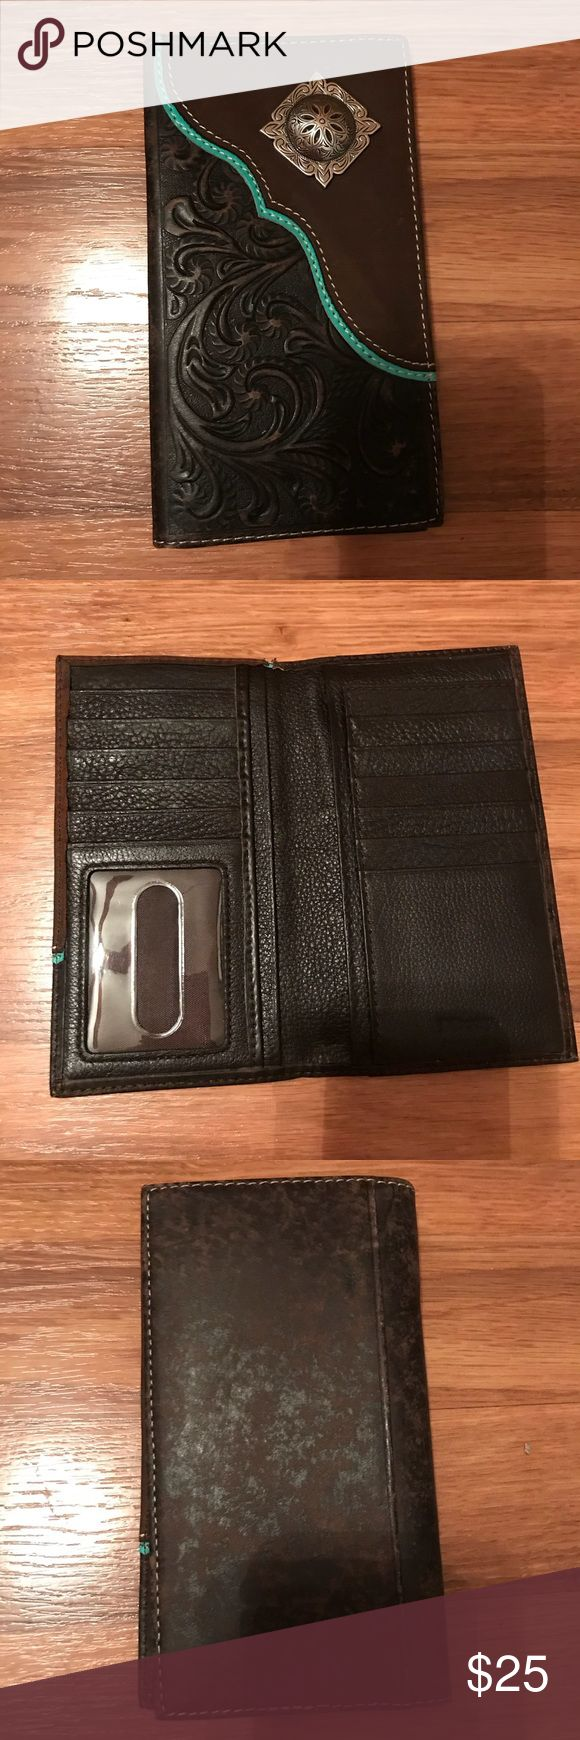 Nocona western wallet Men's or women's brown and teal leather wallet with silver concho. In like new condition, no damage or marks. Nocona Bags Wallets